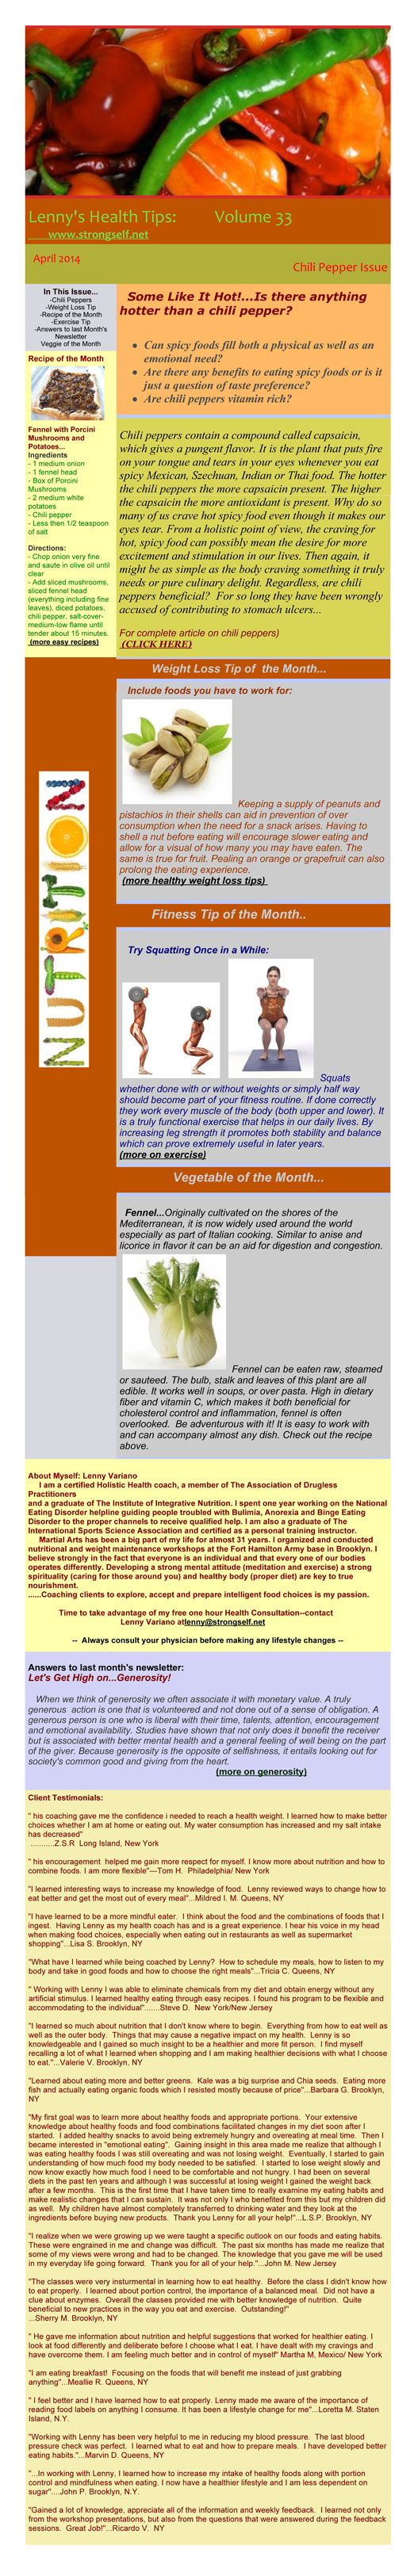 April 2014 Healthy Tips Newsletter from certified Holistic Health Counselor Lenny Variano